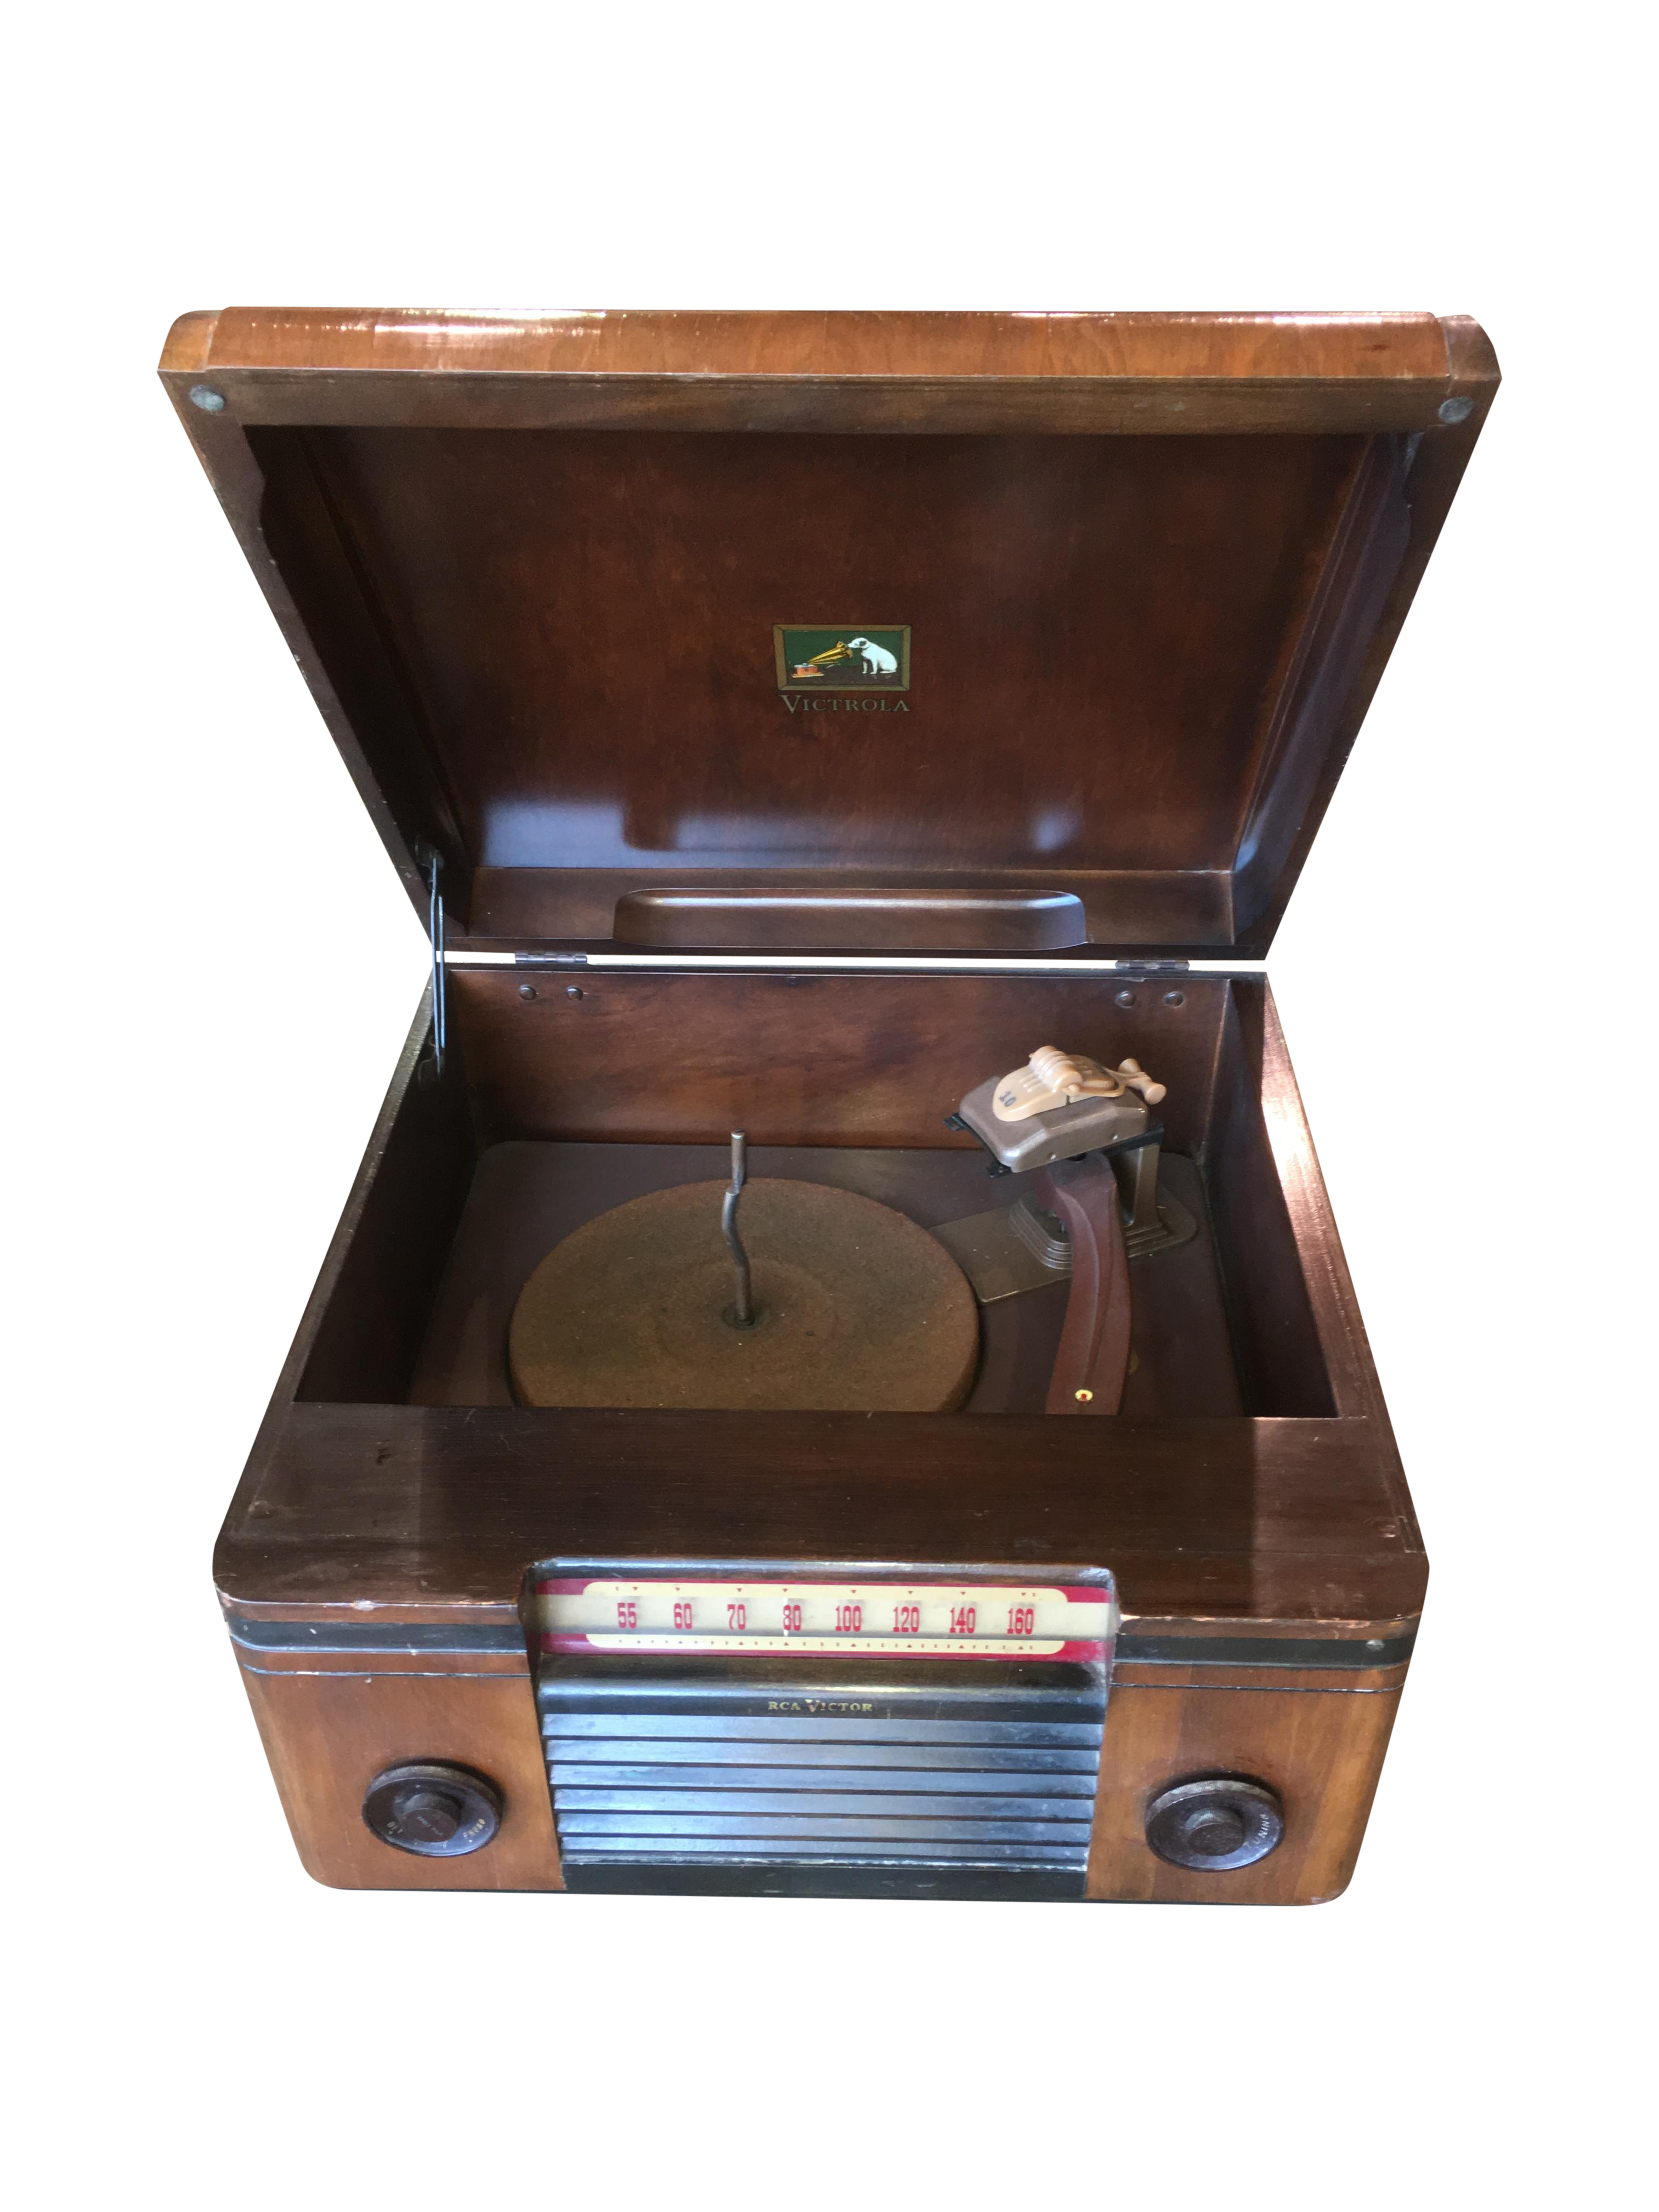 1940 S Rca Victor Victrola Radio Record Player Chairish